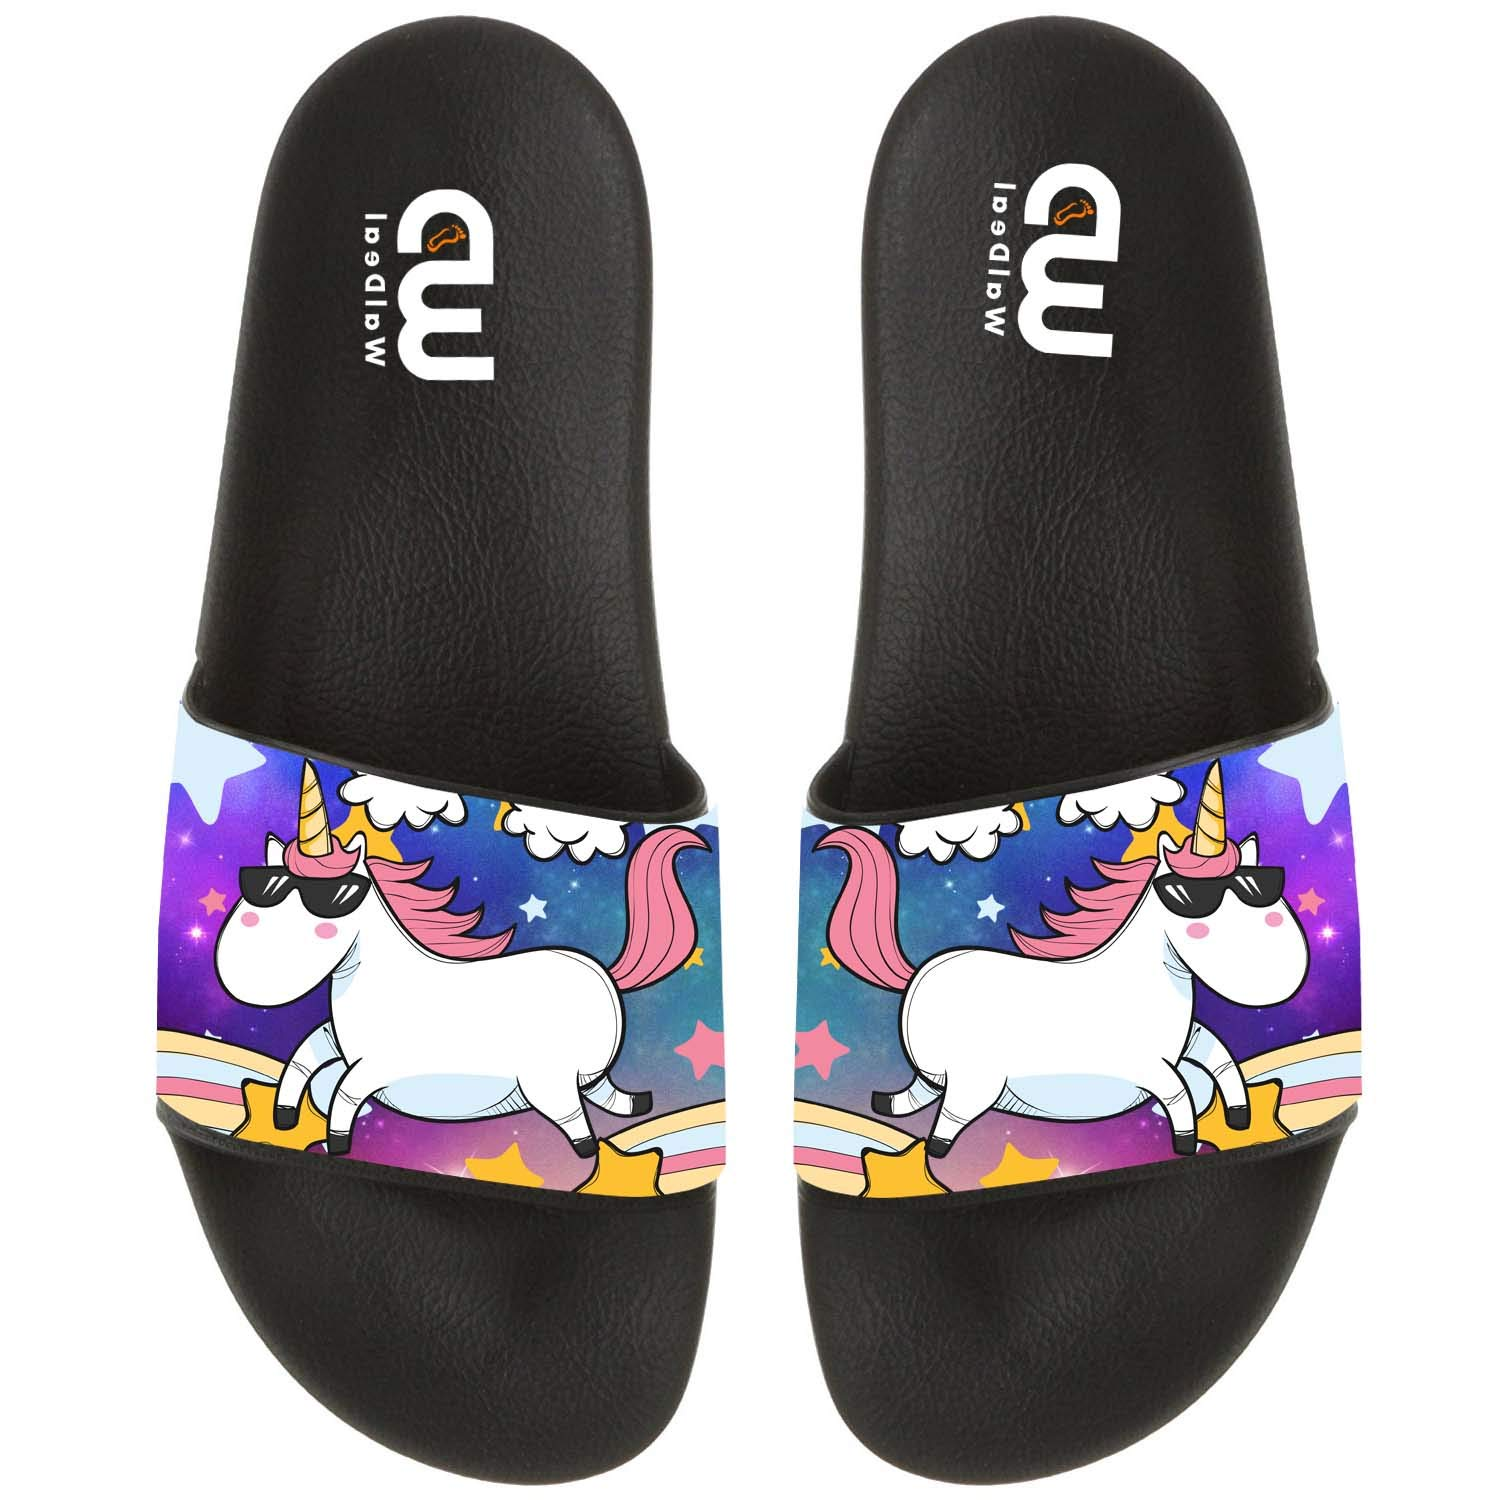 Cute Unicorn With Sunglasses Summer Slide Slippers For Girl Boy Kid Non-Slip House Sandal Shoes size 12